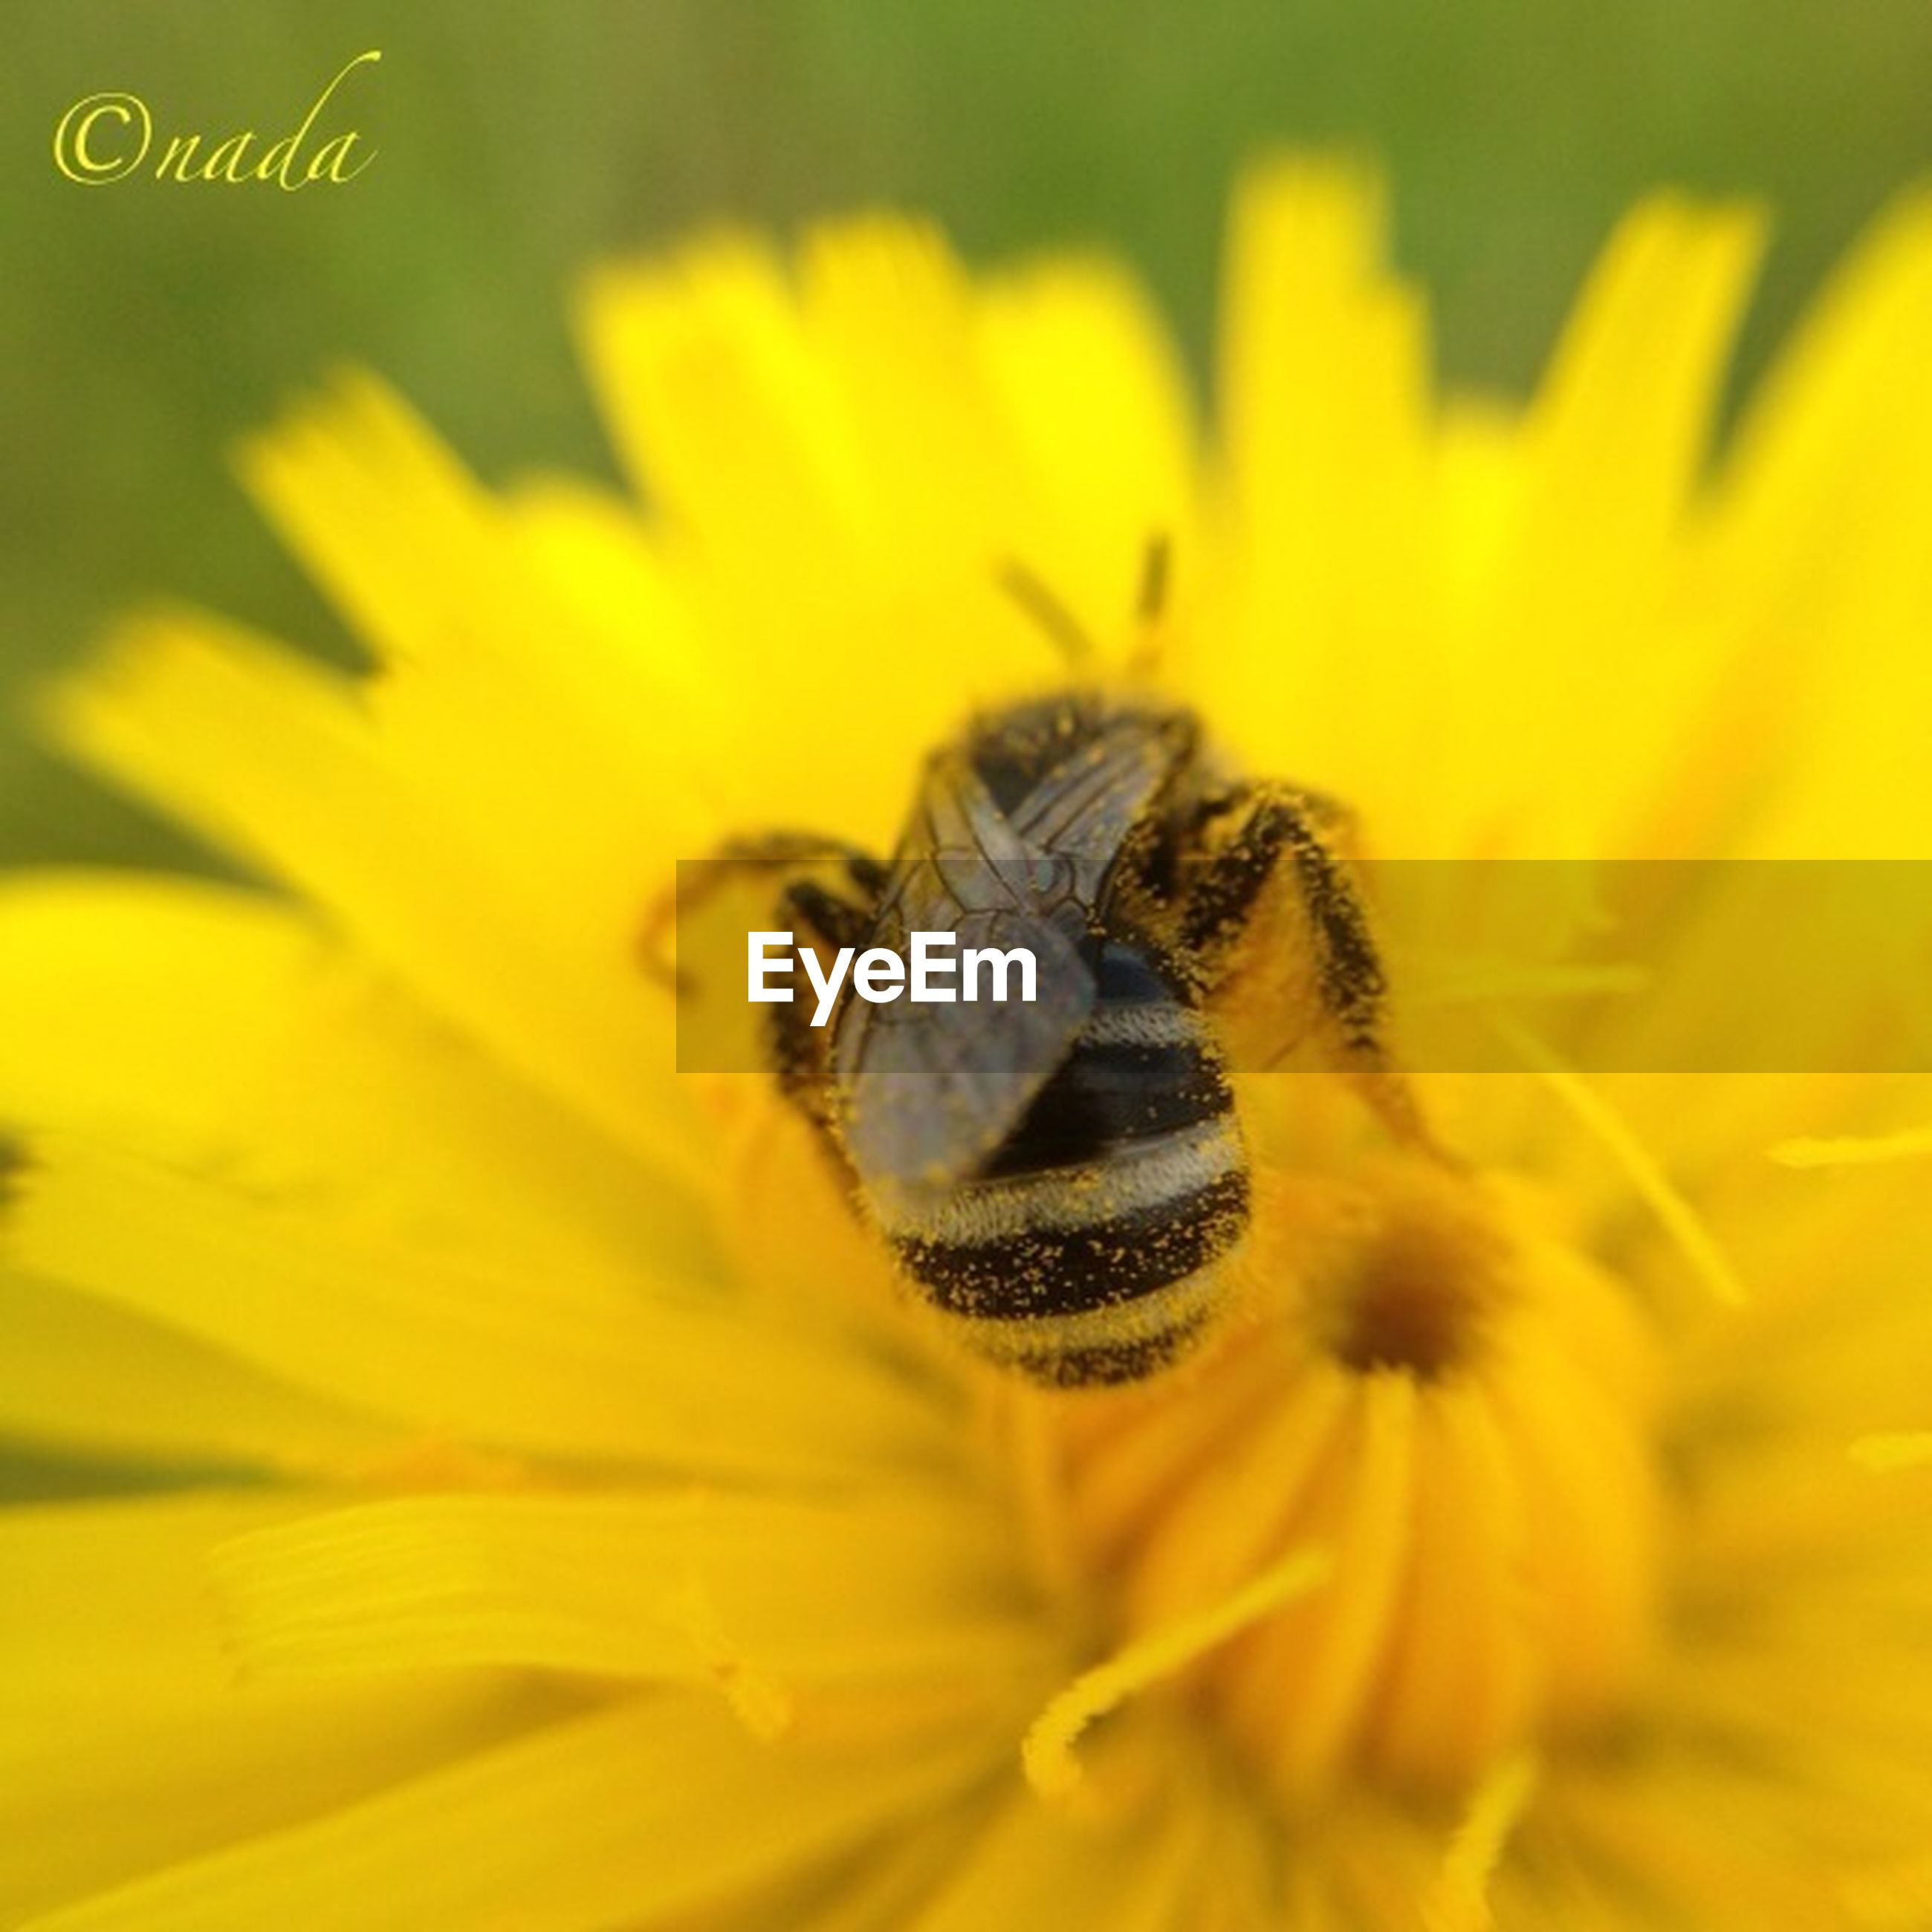 flower, yellow, petal, one animal, freshness, insect, animal themes, flower head, animals in the wild, fragility, close-up, wildlife, beauty in nature, growth, nature, pollen, bee, focus on foreground, single flower, pollination